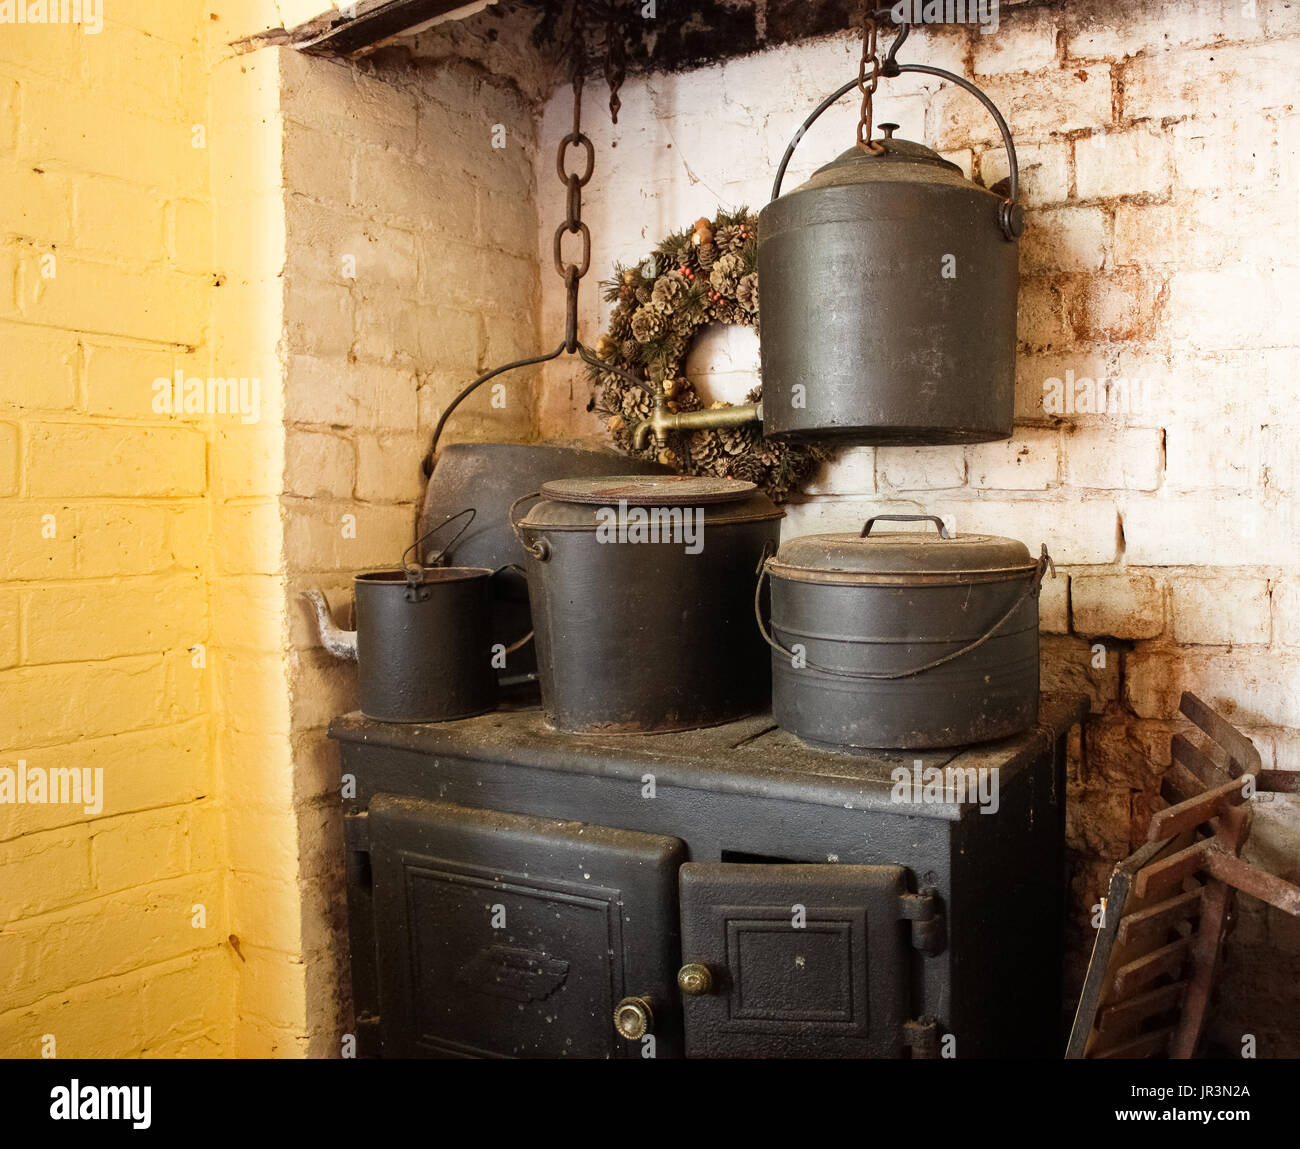 cast iron kitchen stove plastic containers pots stock photos and images